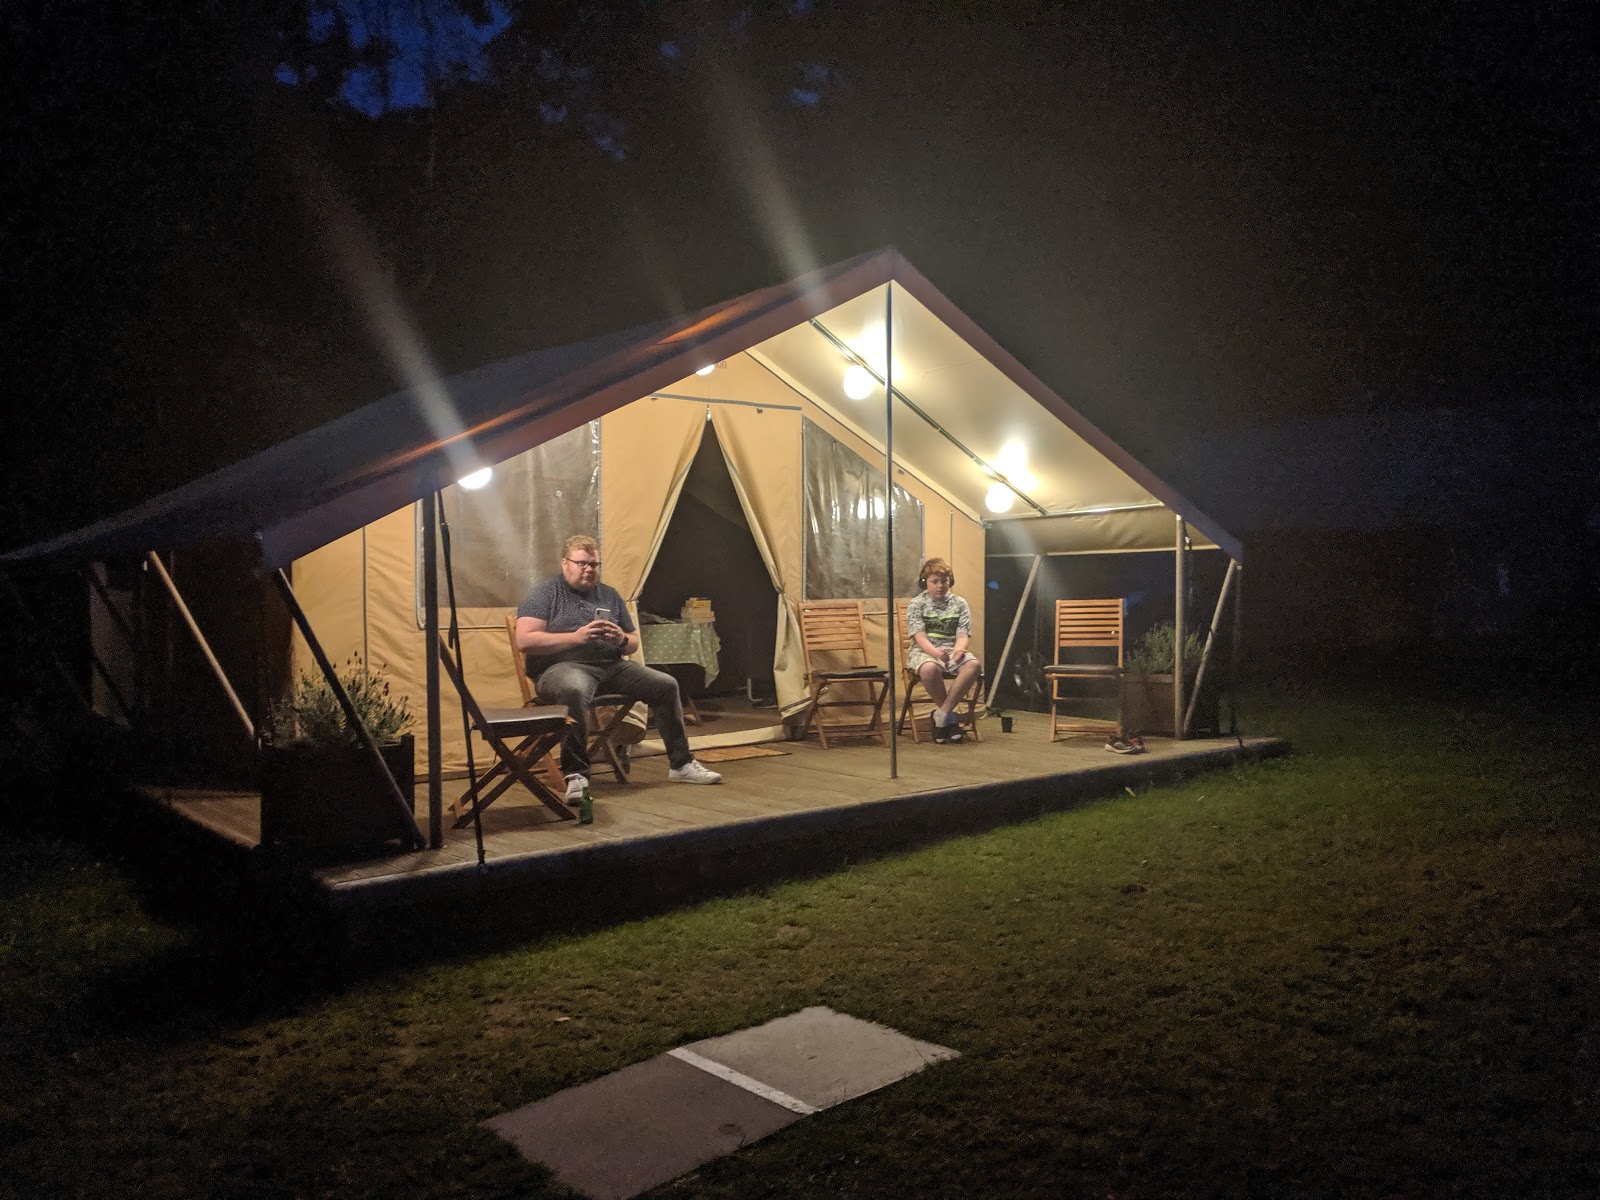 Ready Camp Horsley Review : Glamping near LEGOLAND and Chessington World of Adventures - tents at night